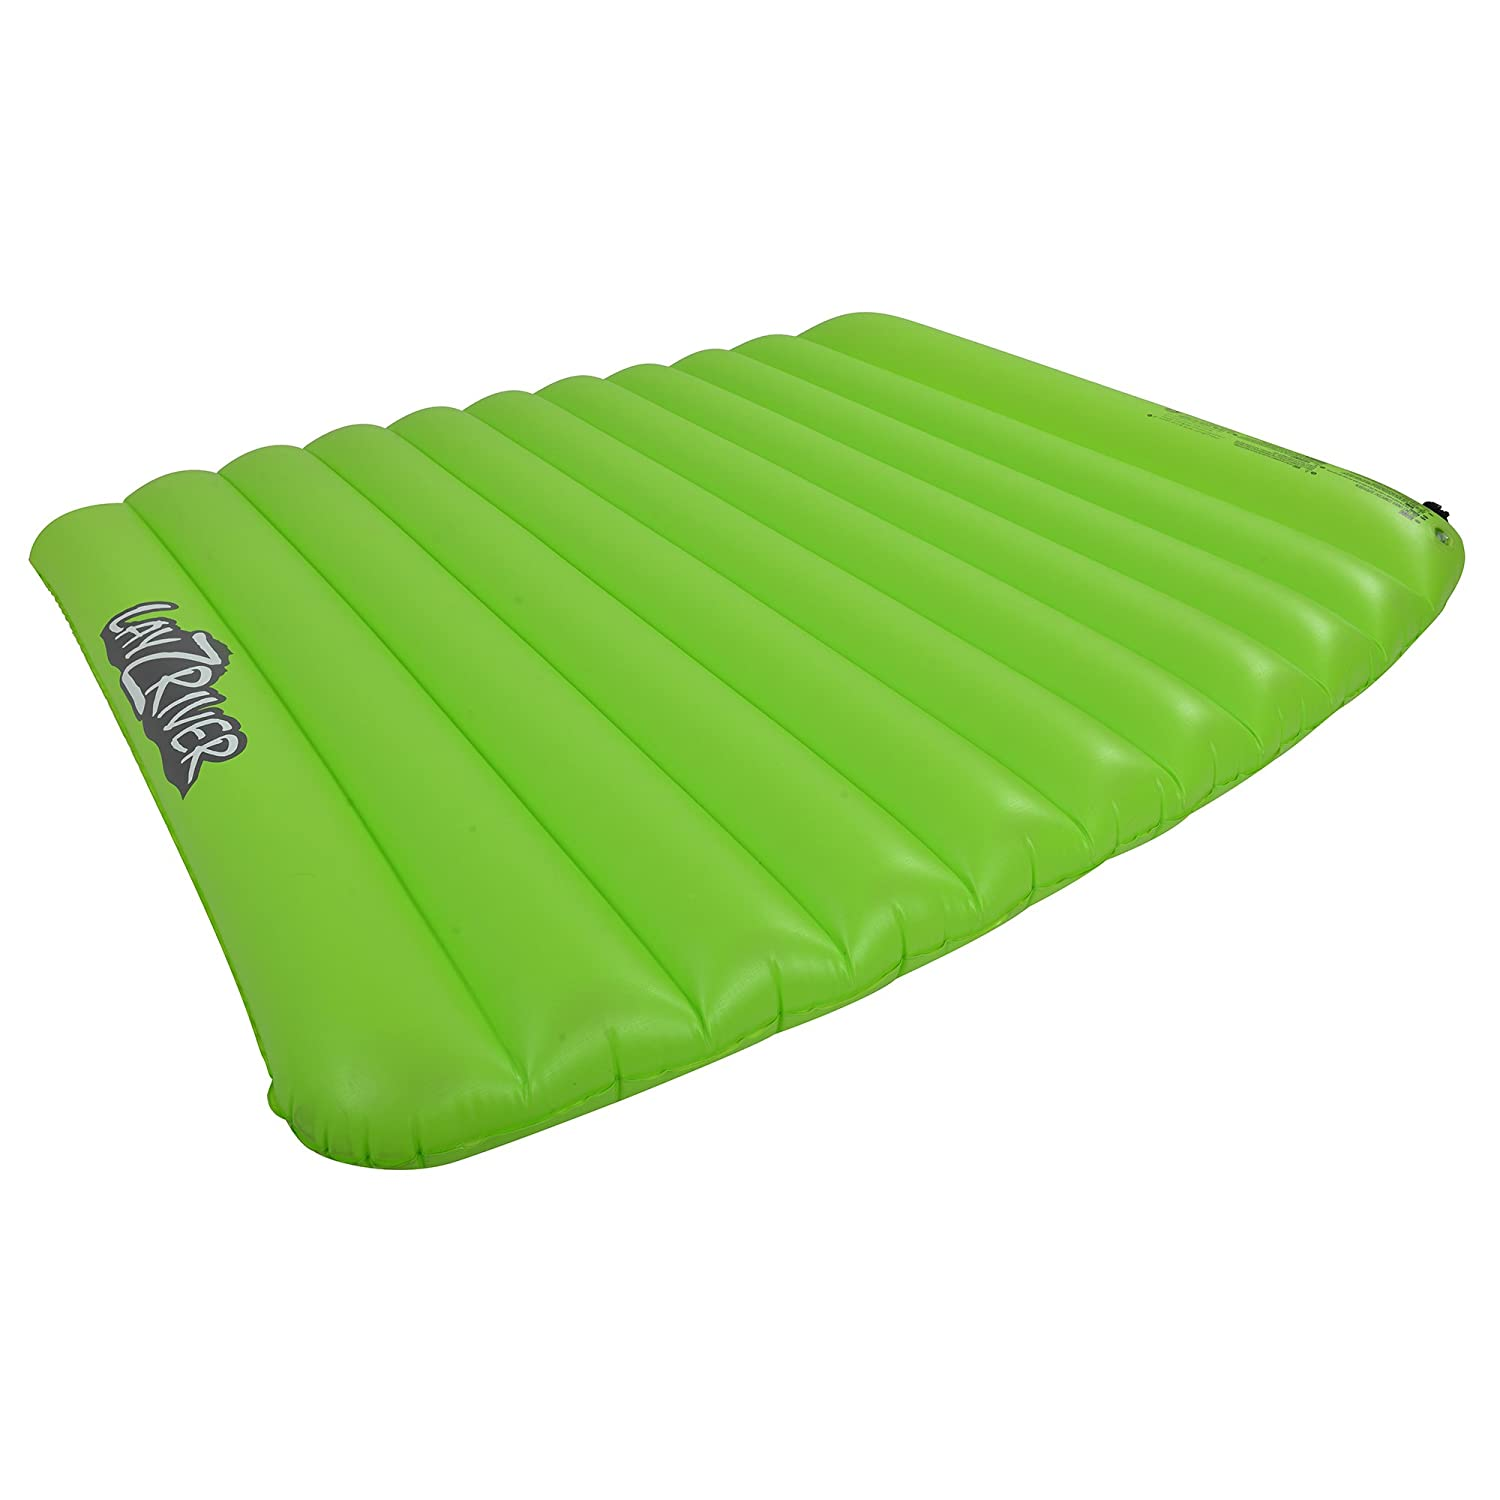 Blue Wave Sports Lay-Z-River 2-Person Lake Float Air Mattress, Green/Black RL1821